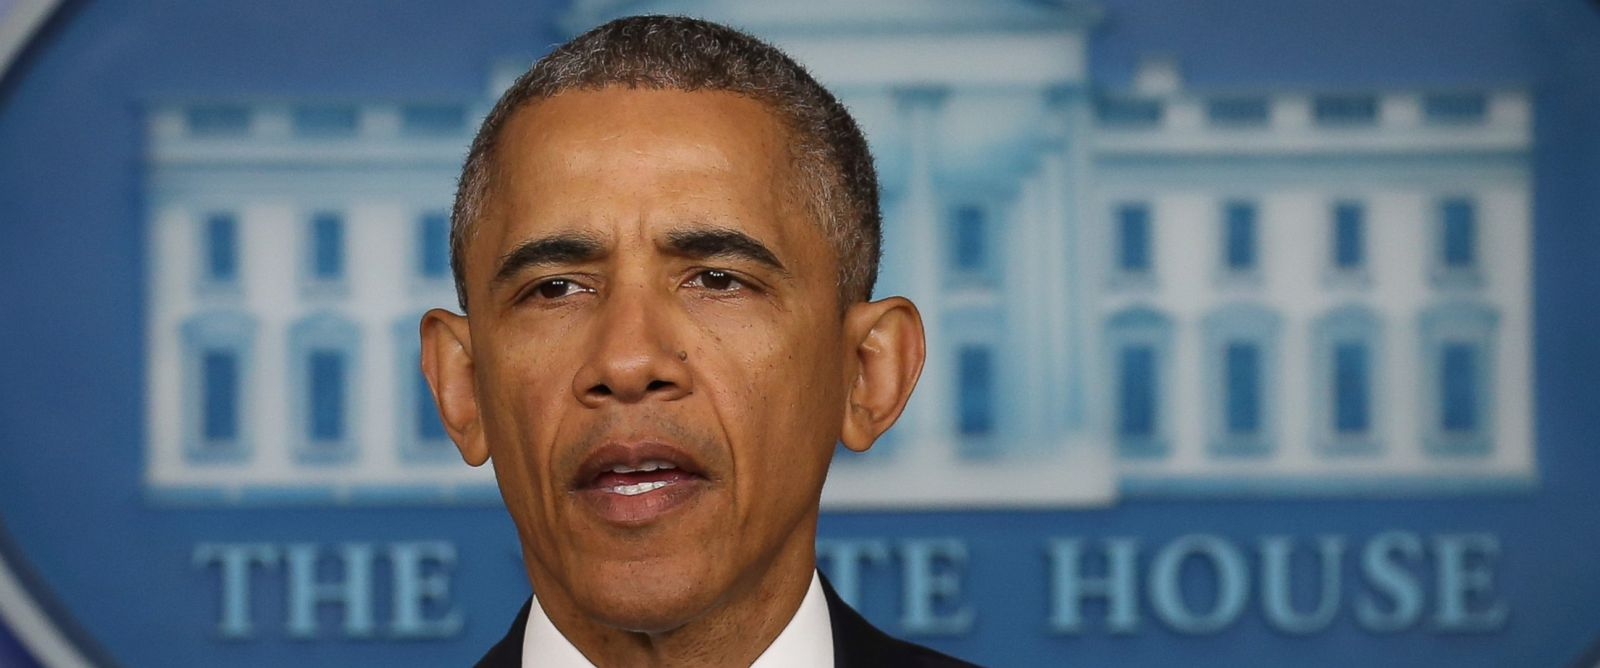 PHOTO: Barack Obama makes a statement at the White House, April 23, 2015, in Washington about the US drone strike that targeted a suspected al Qaeda compound in Pakistan but inadvertently killed an American and Italian being held hostage.